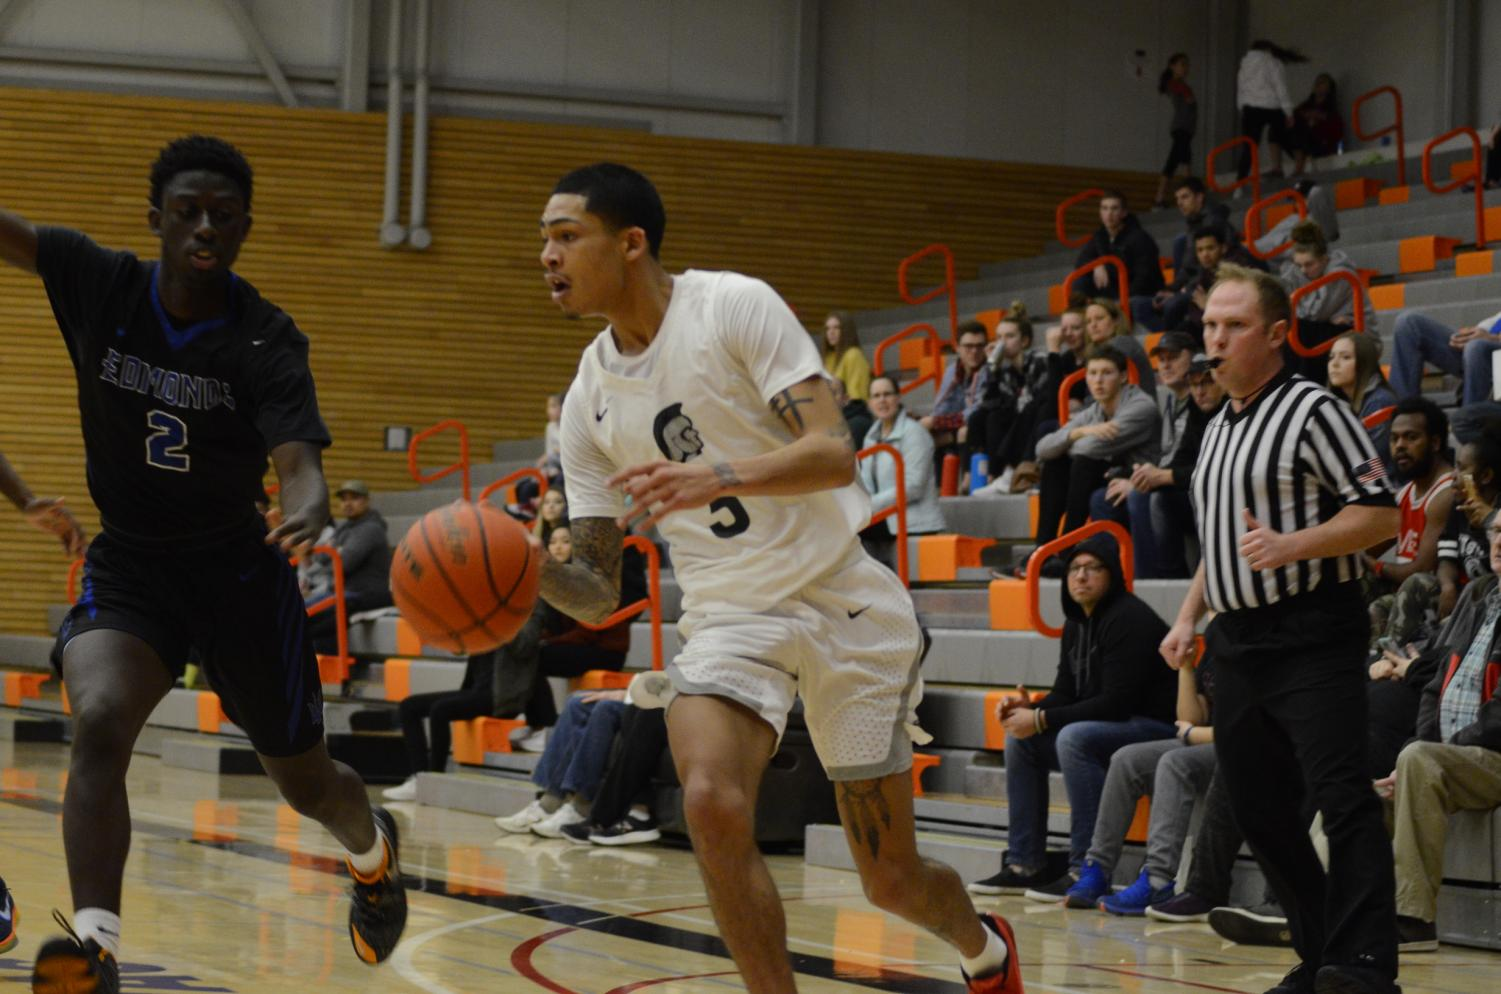 Trojan%E2%80%99s+star+Sophomore+guard+Markeith+Brown+Jr.+dribble+drives%2C+gaining+the+inside+position+on+Edmonds%E2%80%99+Forward+Muhammed+Kolly+in+a+92-76+victorious+effort+Saturday+night.+